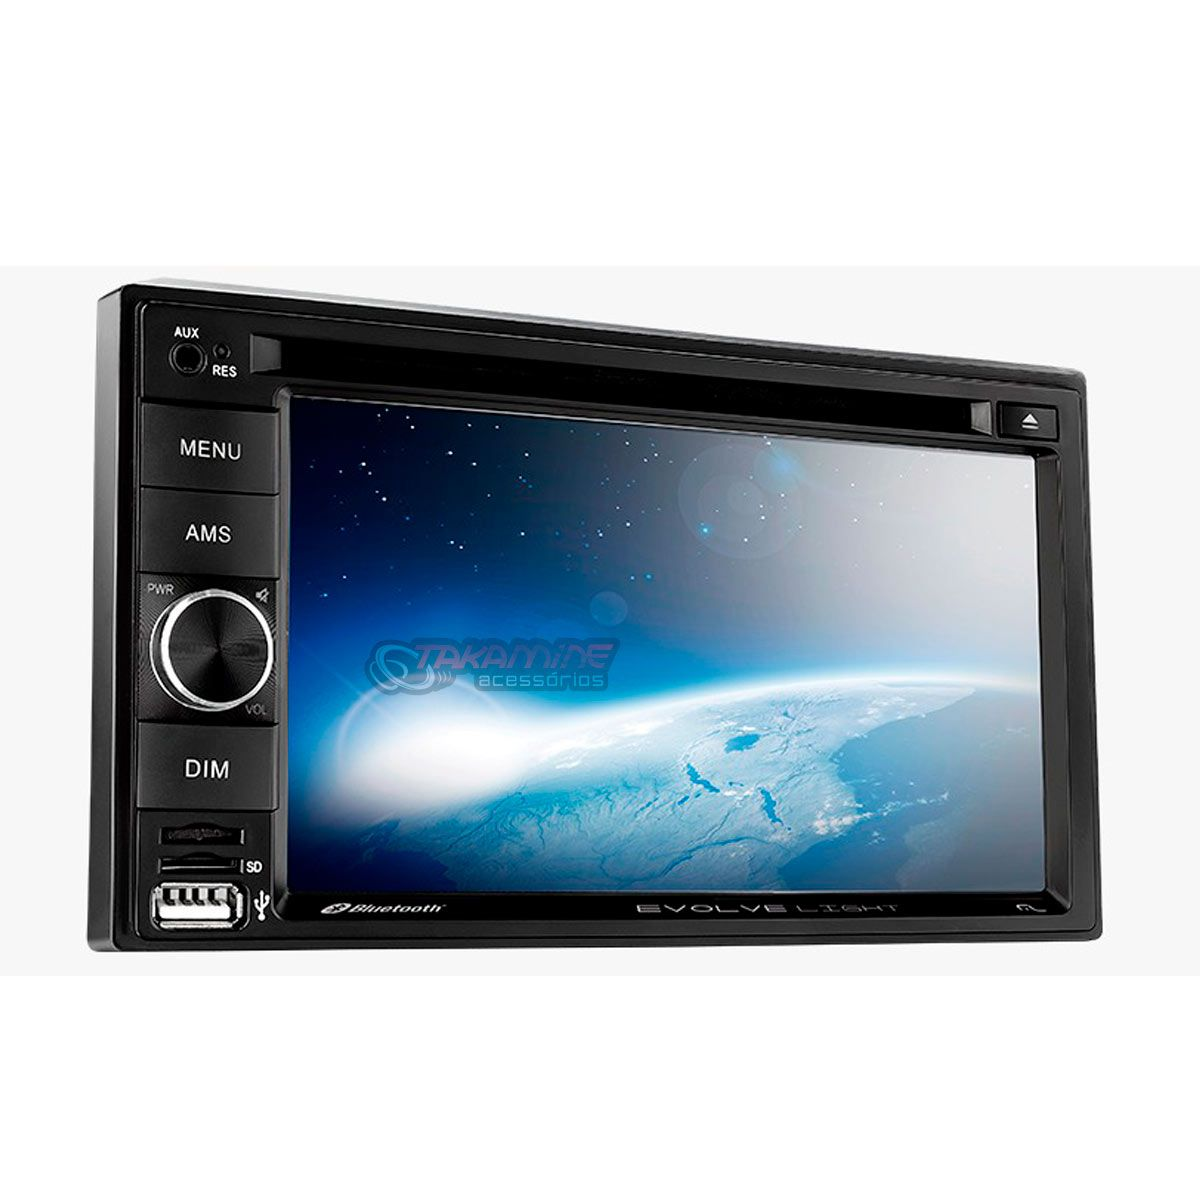 "DVD automotivo Evolve Light 2 Din com Tela de 6.2"" USB / Bluetooth e Espelhamento de Celular"